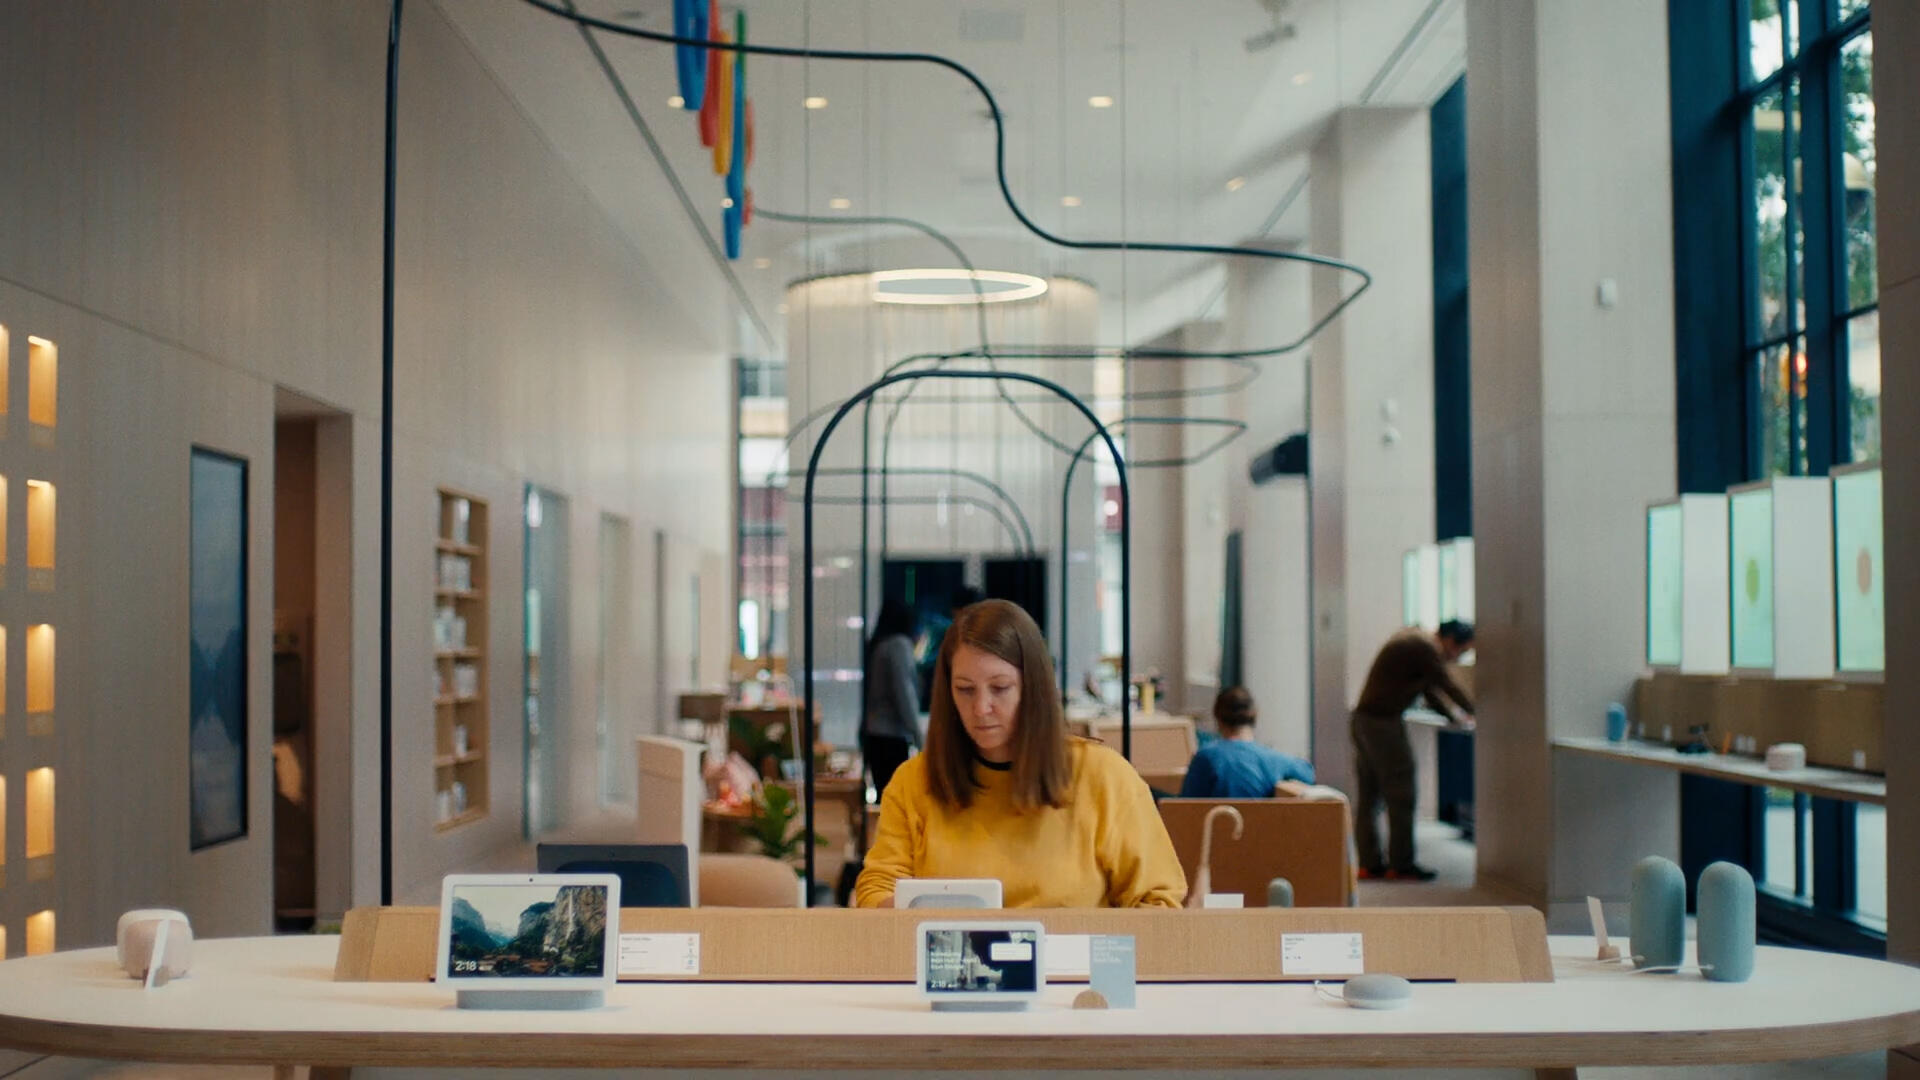 Video: Google opens first retail store, Facebook begins testing ads in Oculus VR headsets